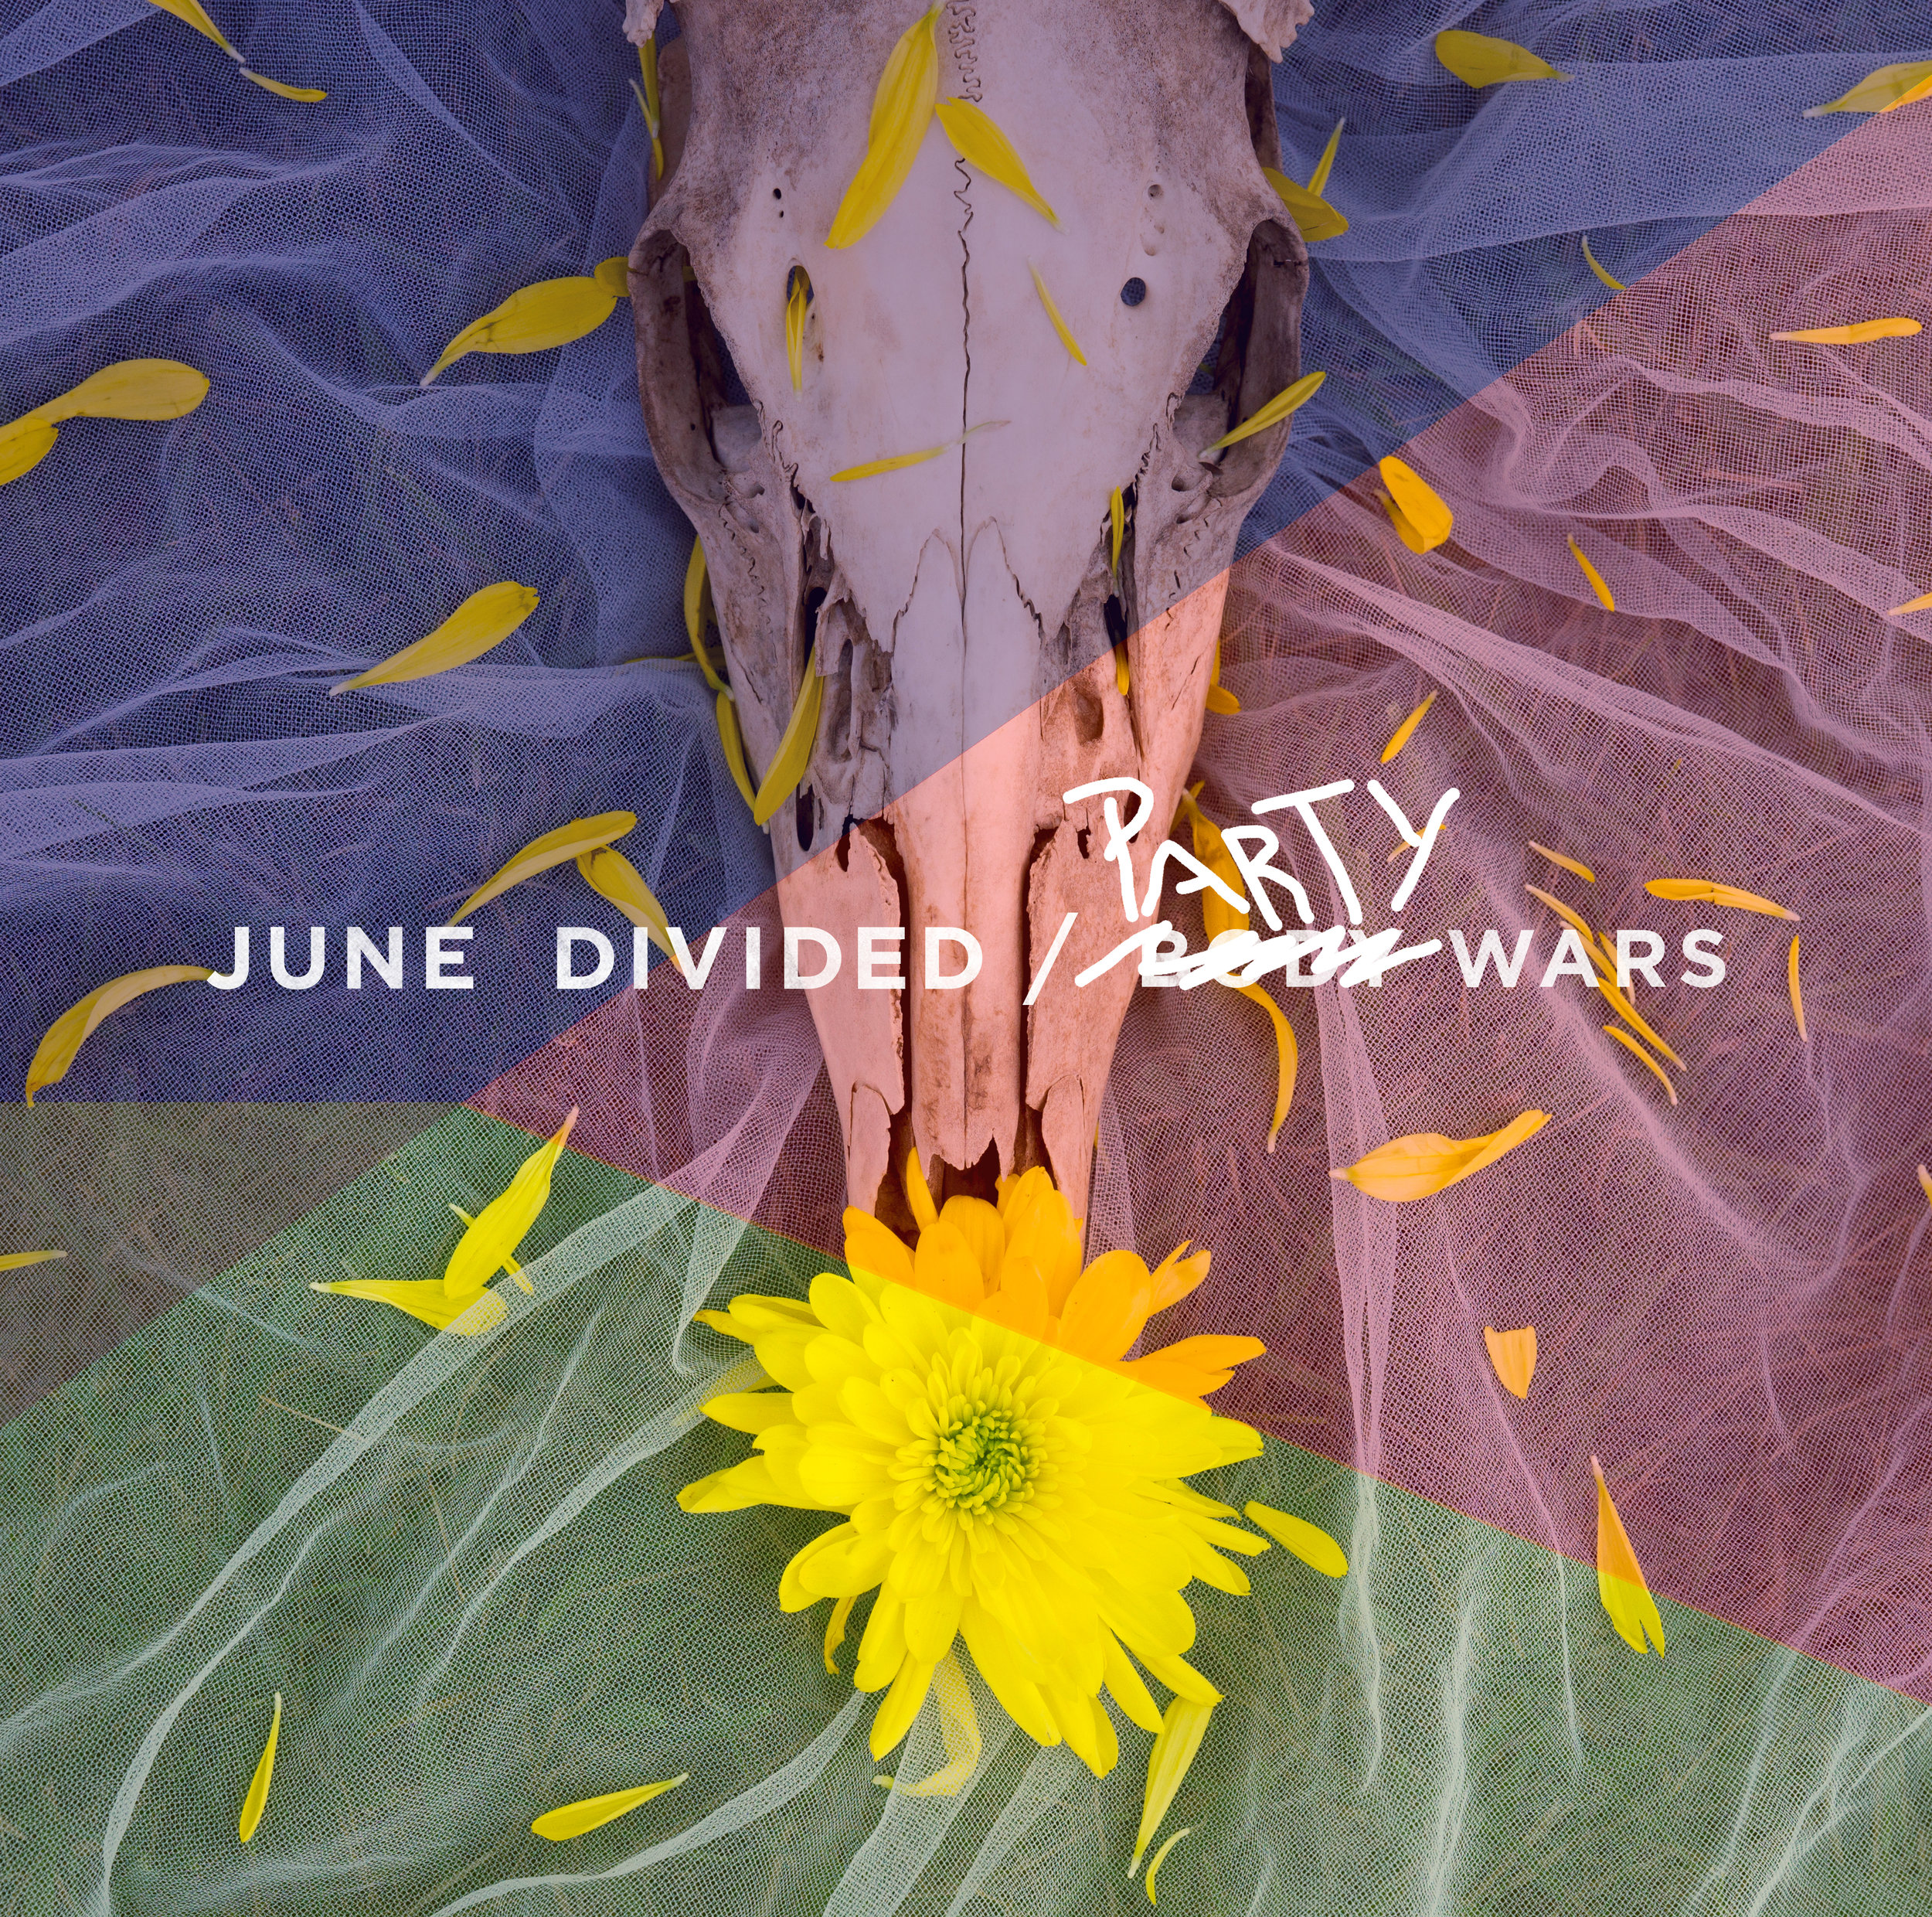 """June Divided - """"I Didn't Mind"""" (Party Wars Remix)"""